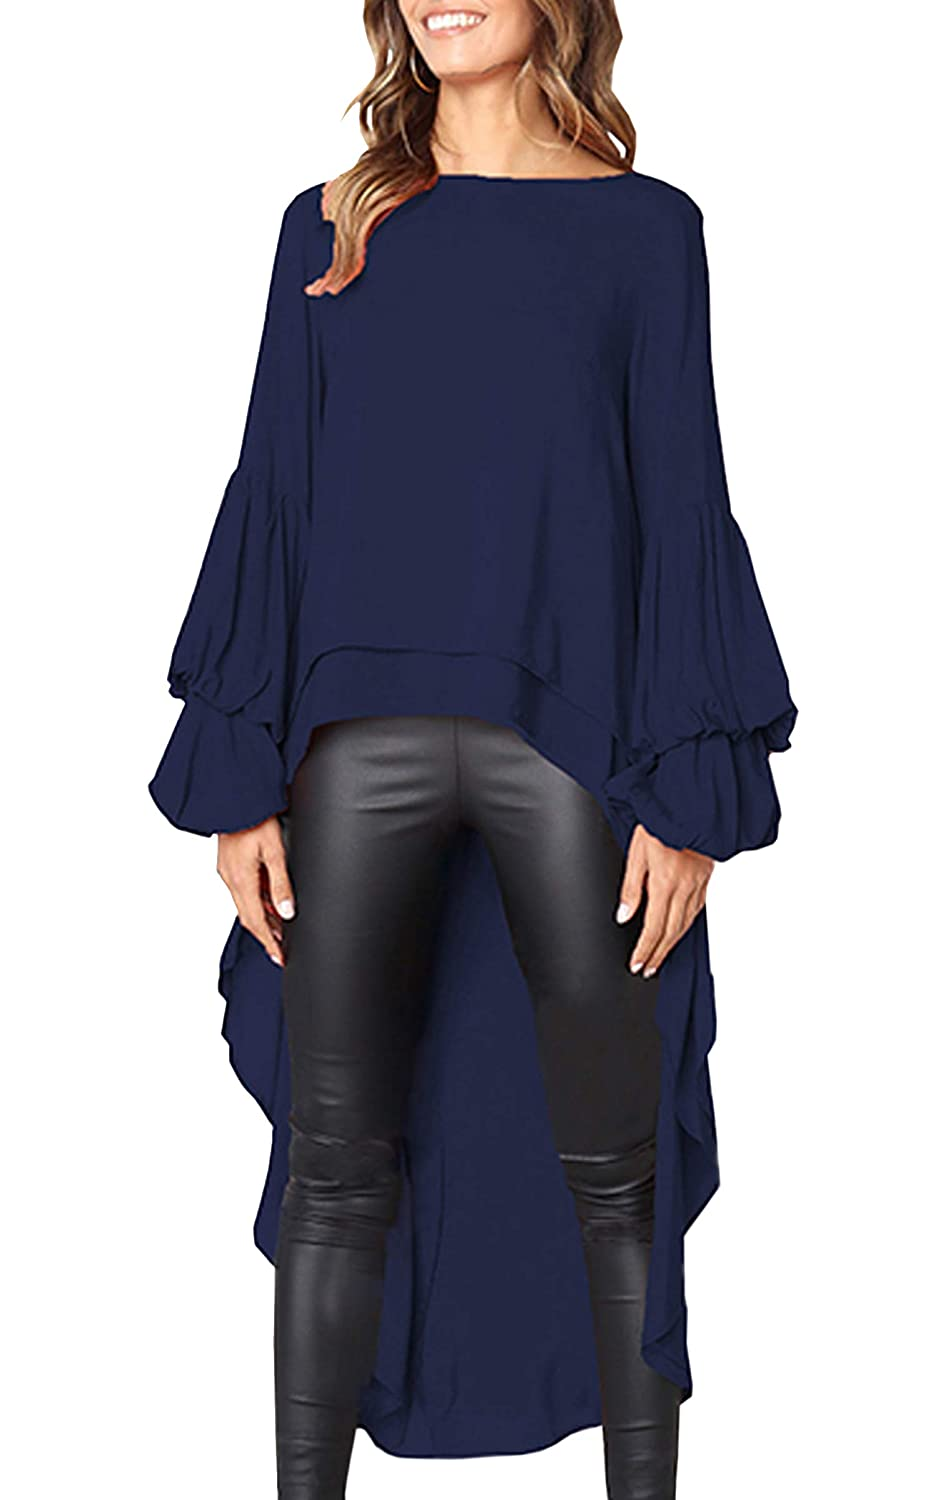 Dark bluee Hiblueco Women's Double Layered High Low Asymmetrical Tunic Top Blouse